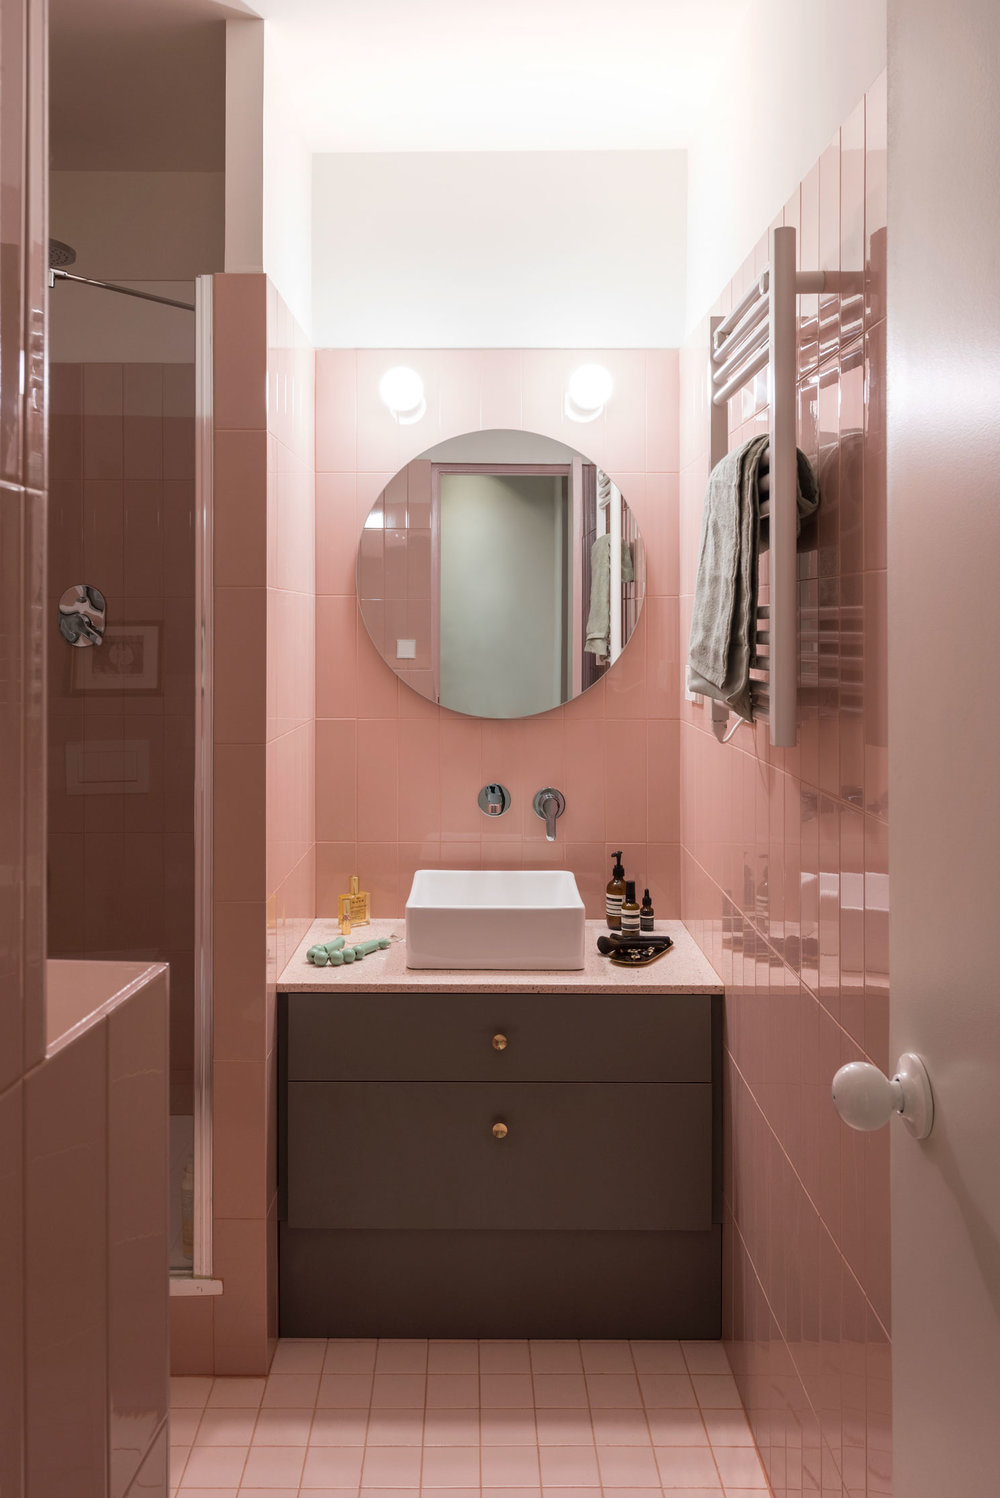 The master bathroom follows the subtle pink palette‭ , ‬clad with vertical 10x30cm ceramics by Ribesalbes and 10x10‭ ‬floor tiles by  Vogue‭. ‬All the counters are made with a pink terrazzo-like quartz finish‭.‬